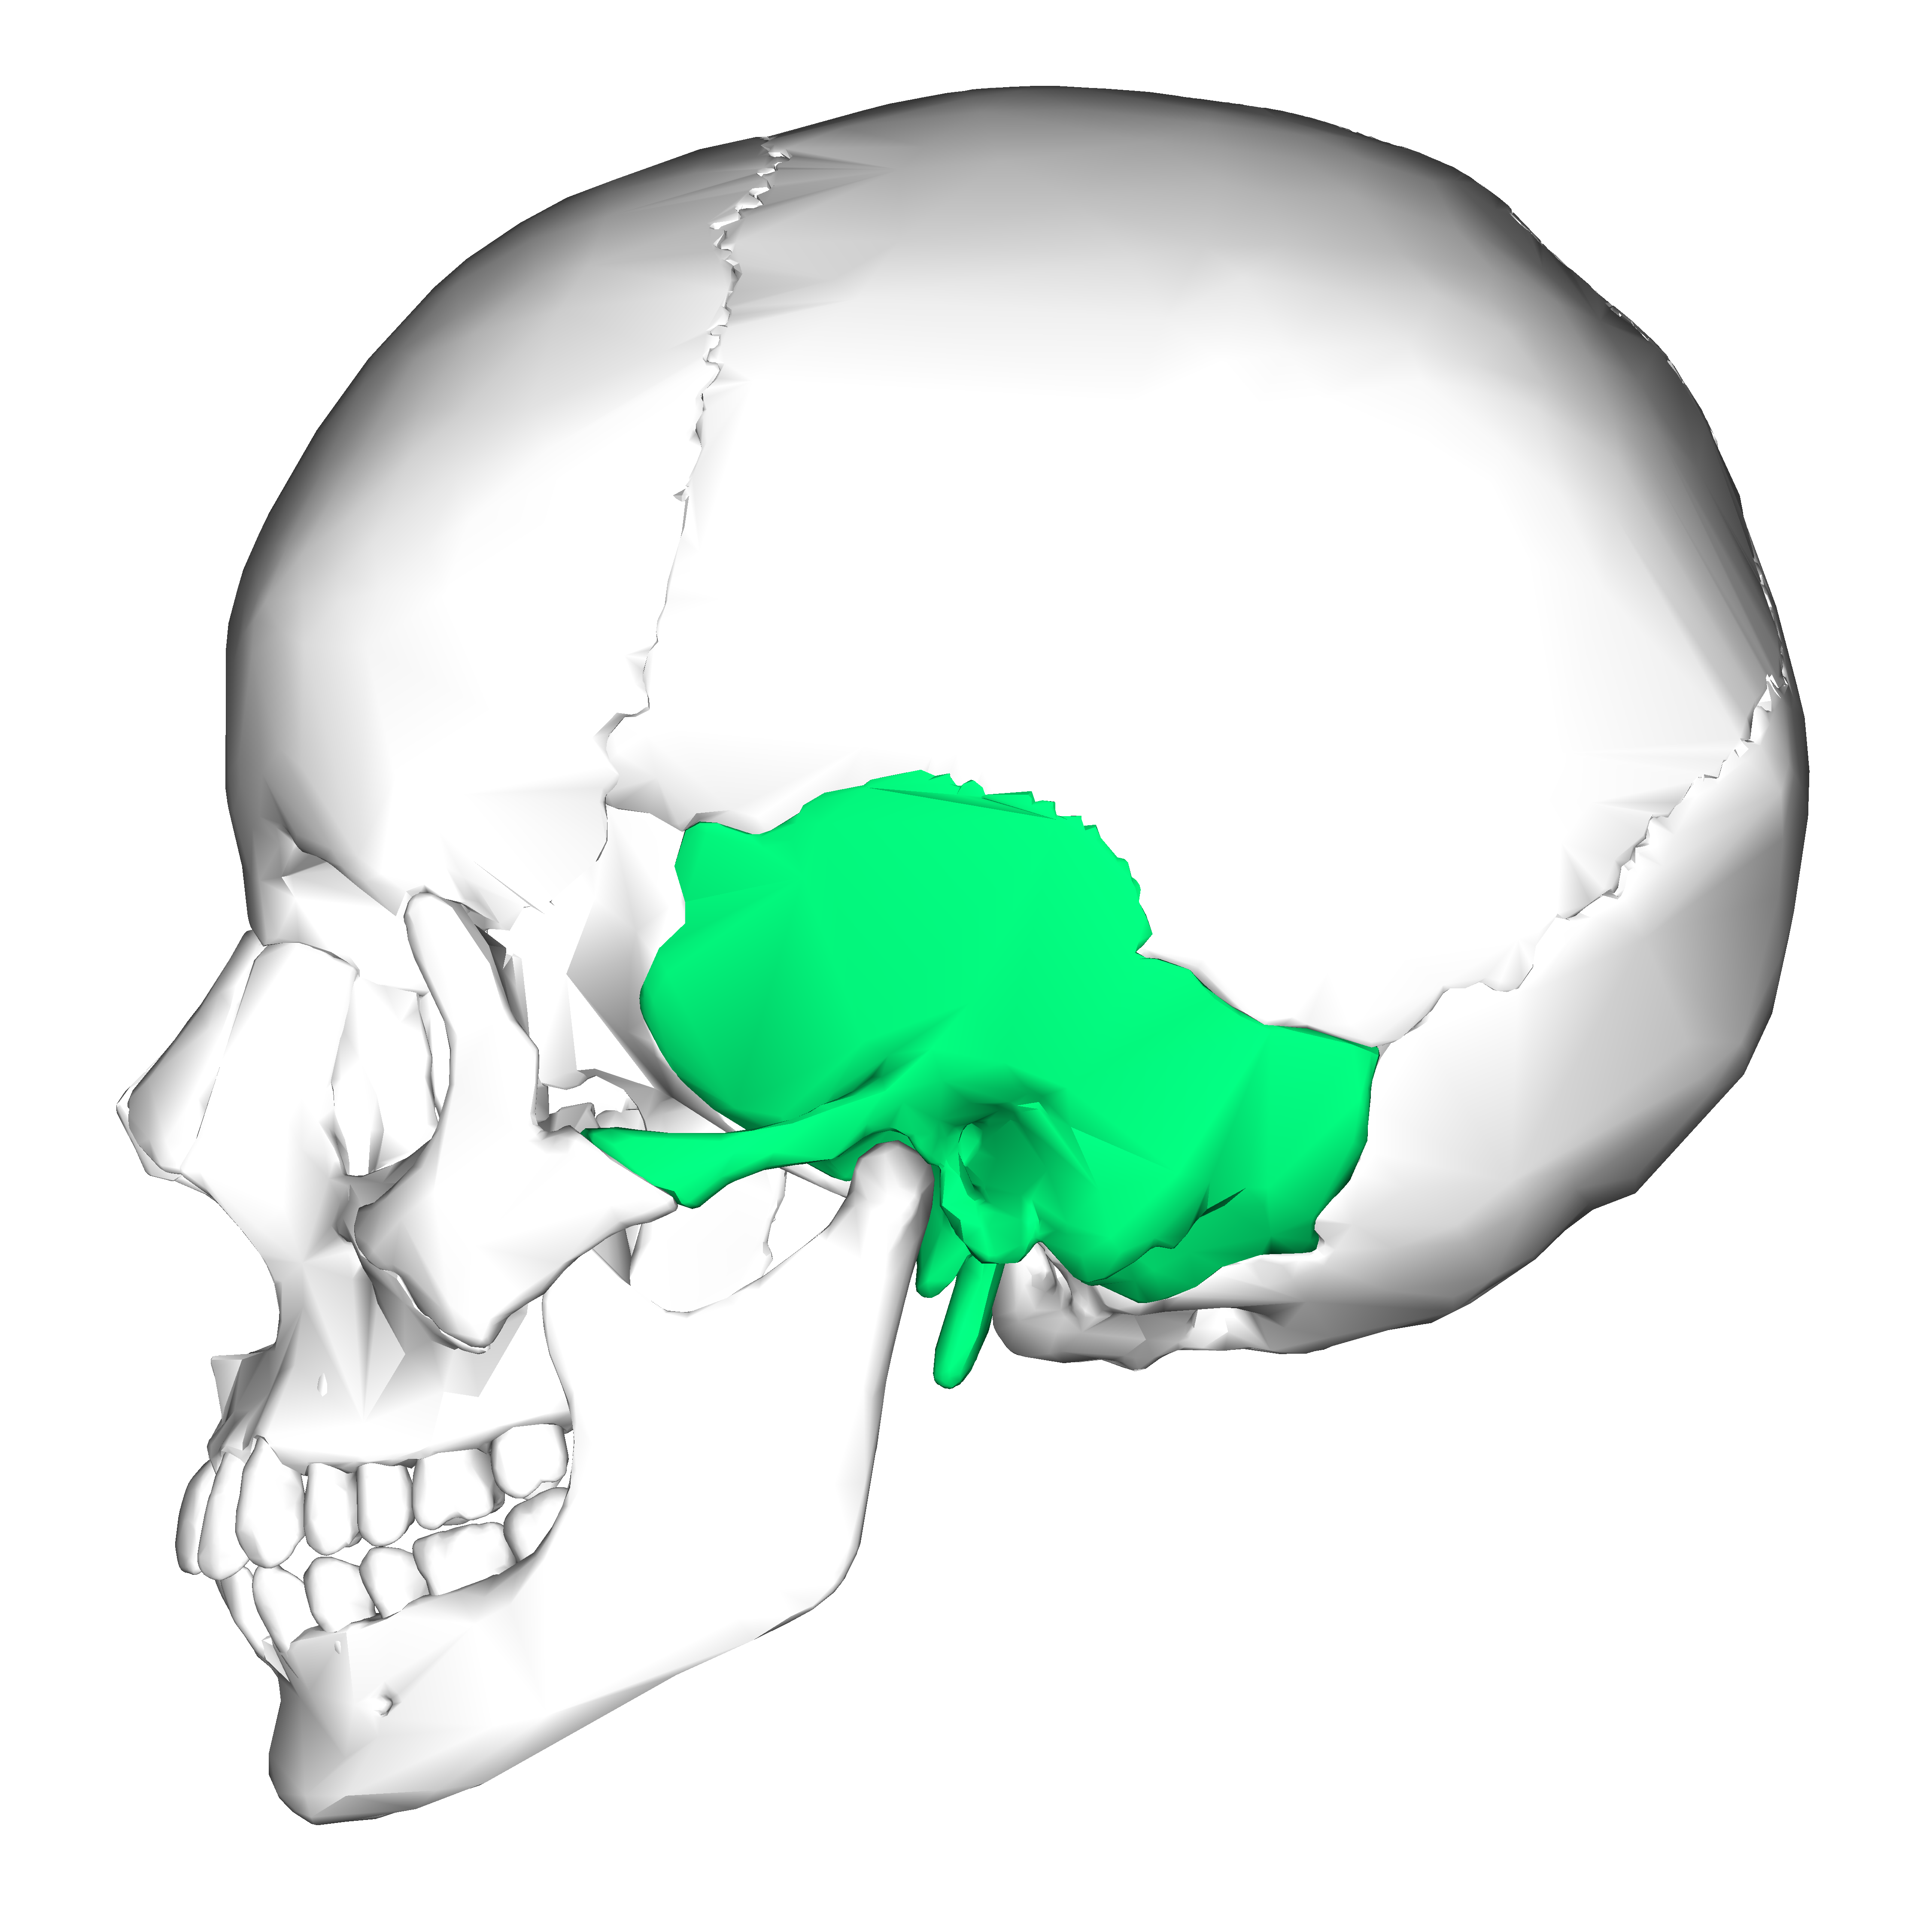 where is the temporal bone located